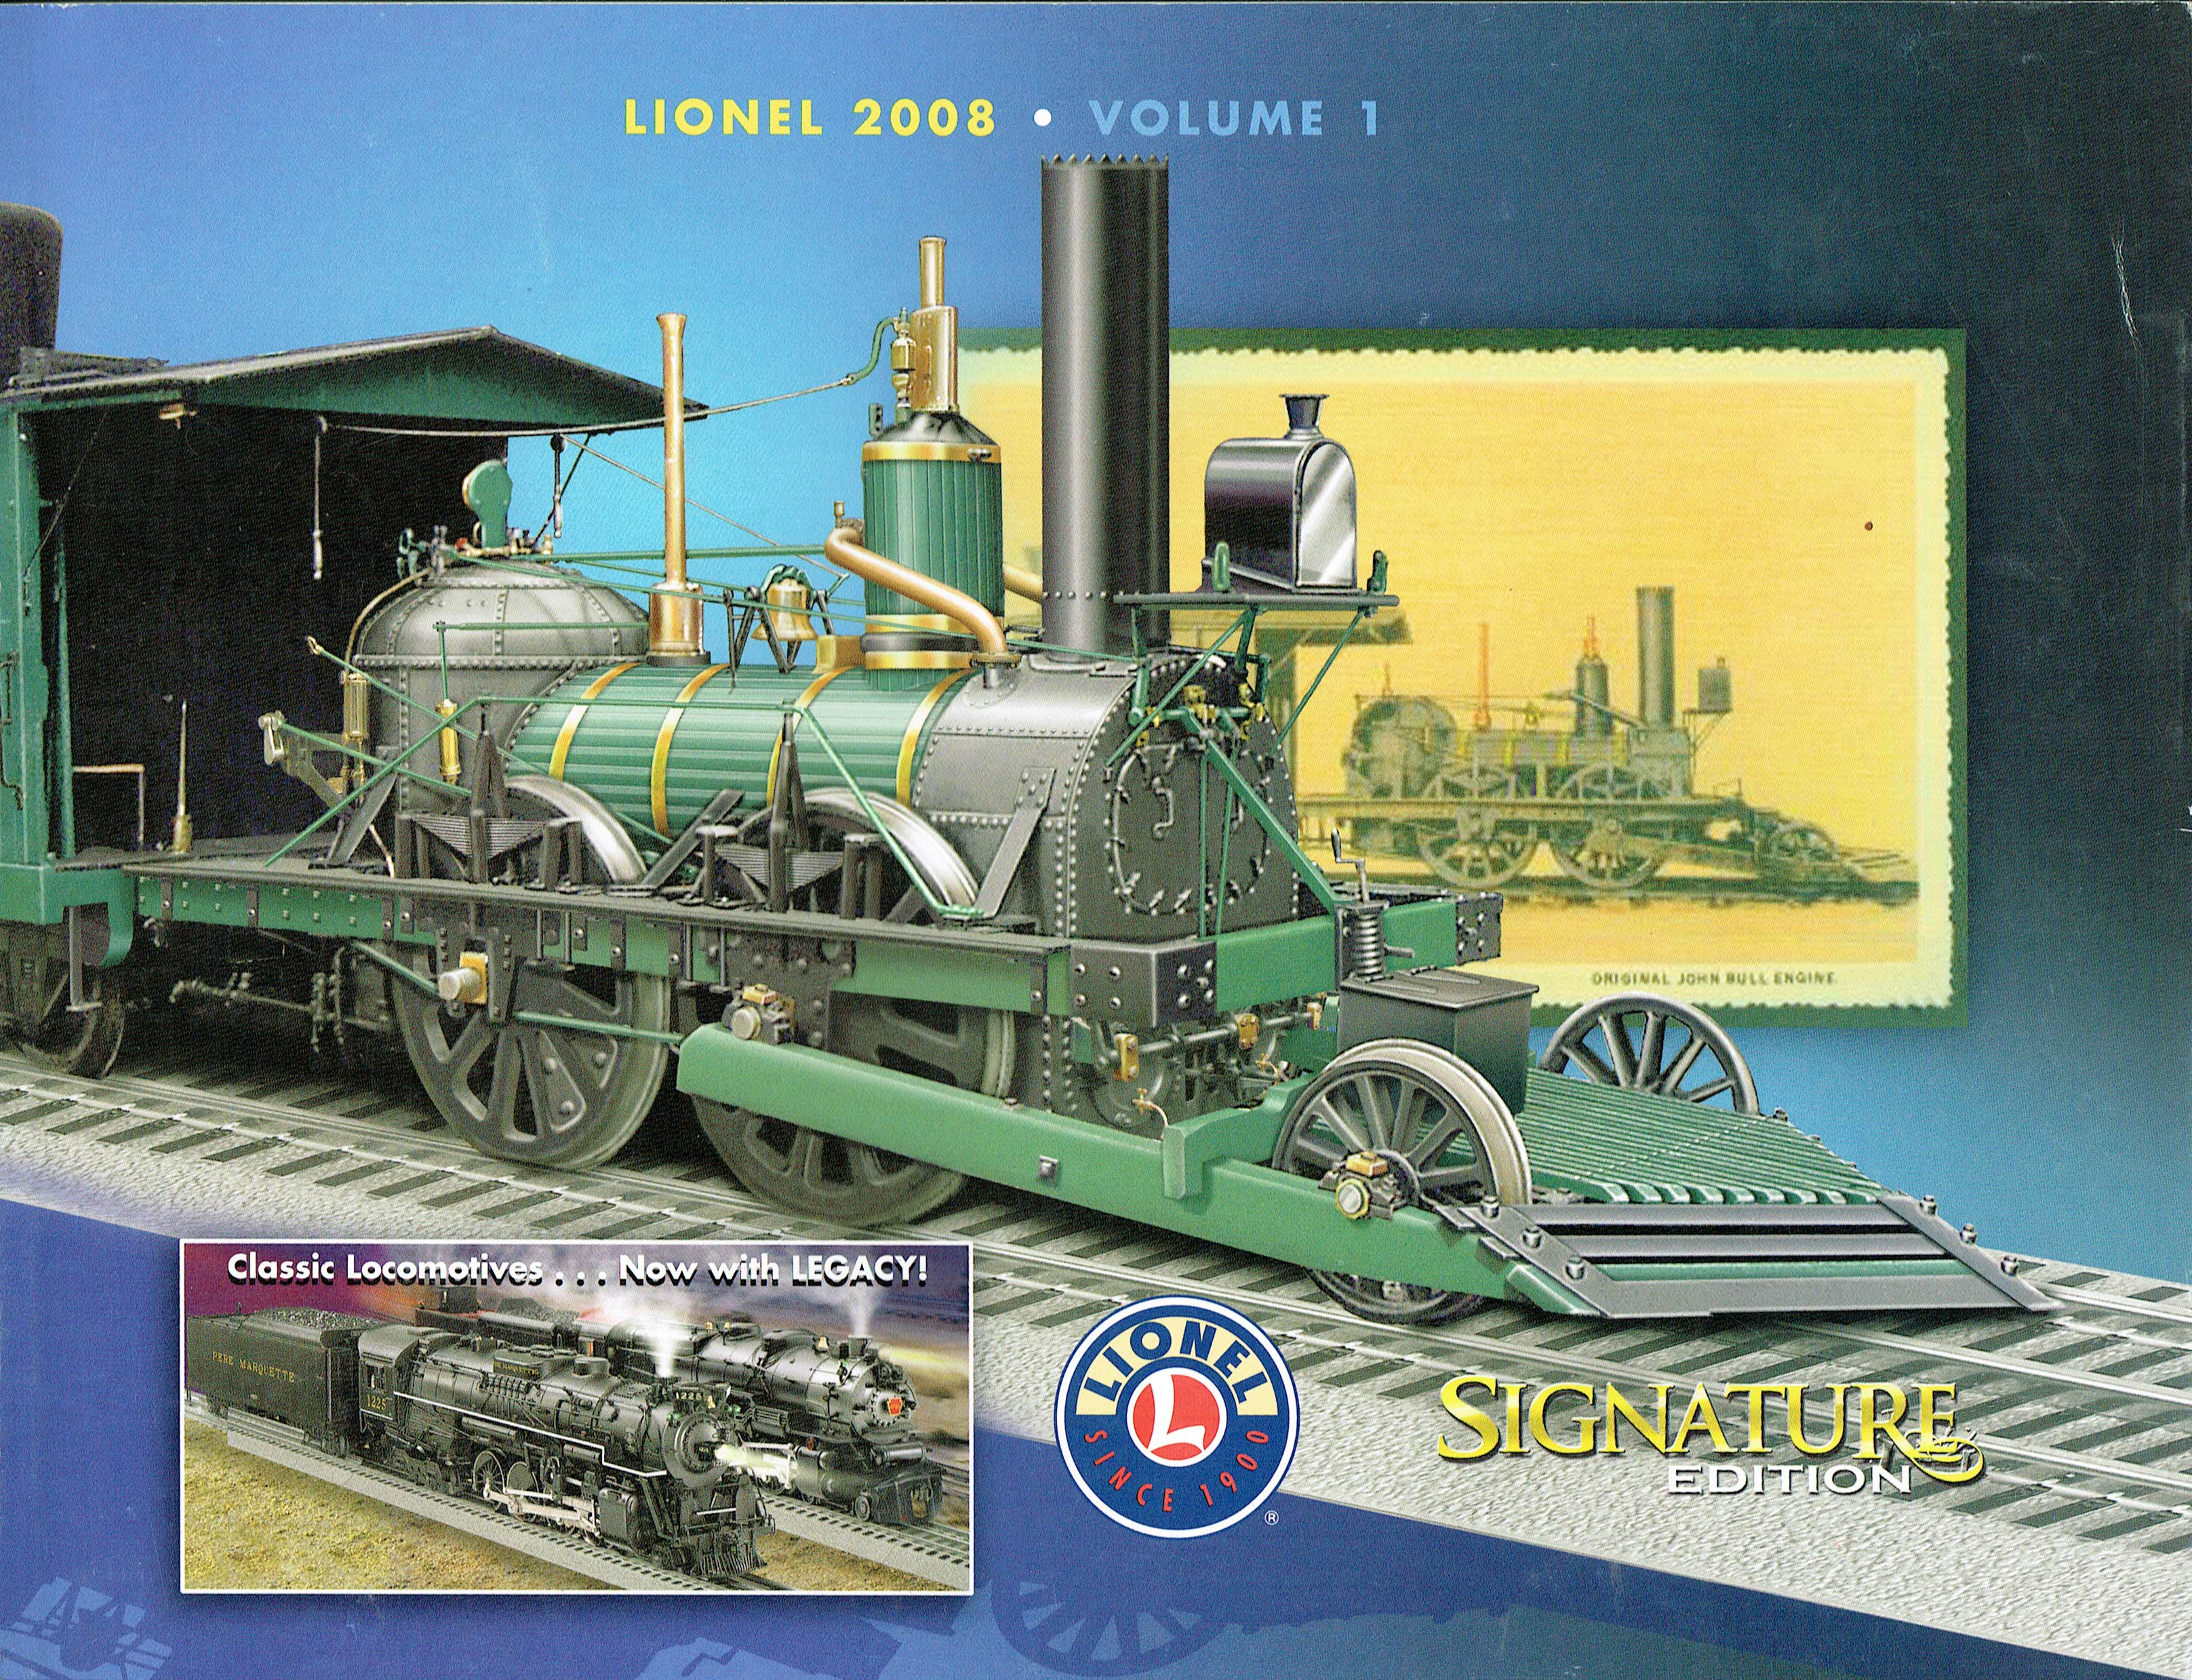 Lionel 2008 Volume 1 Signature Edition Catalog image